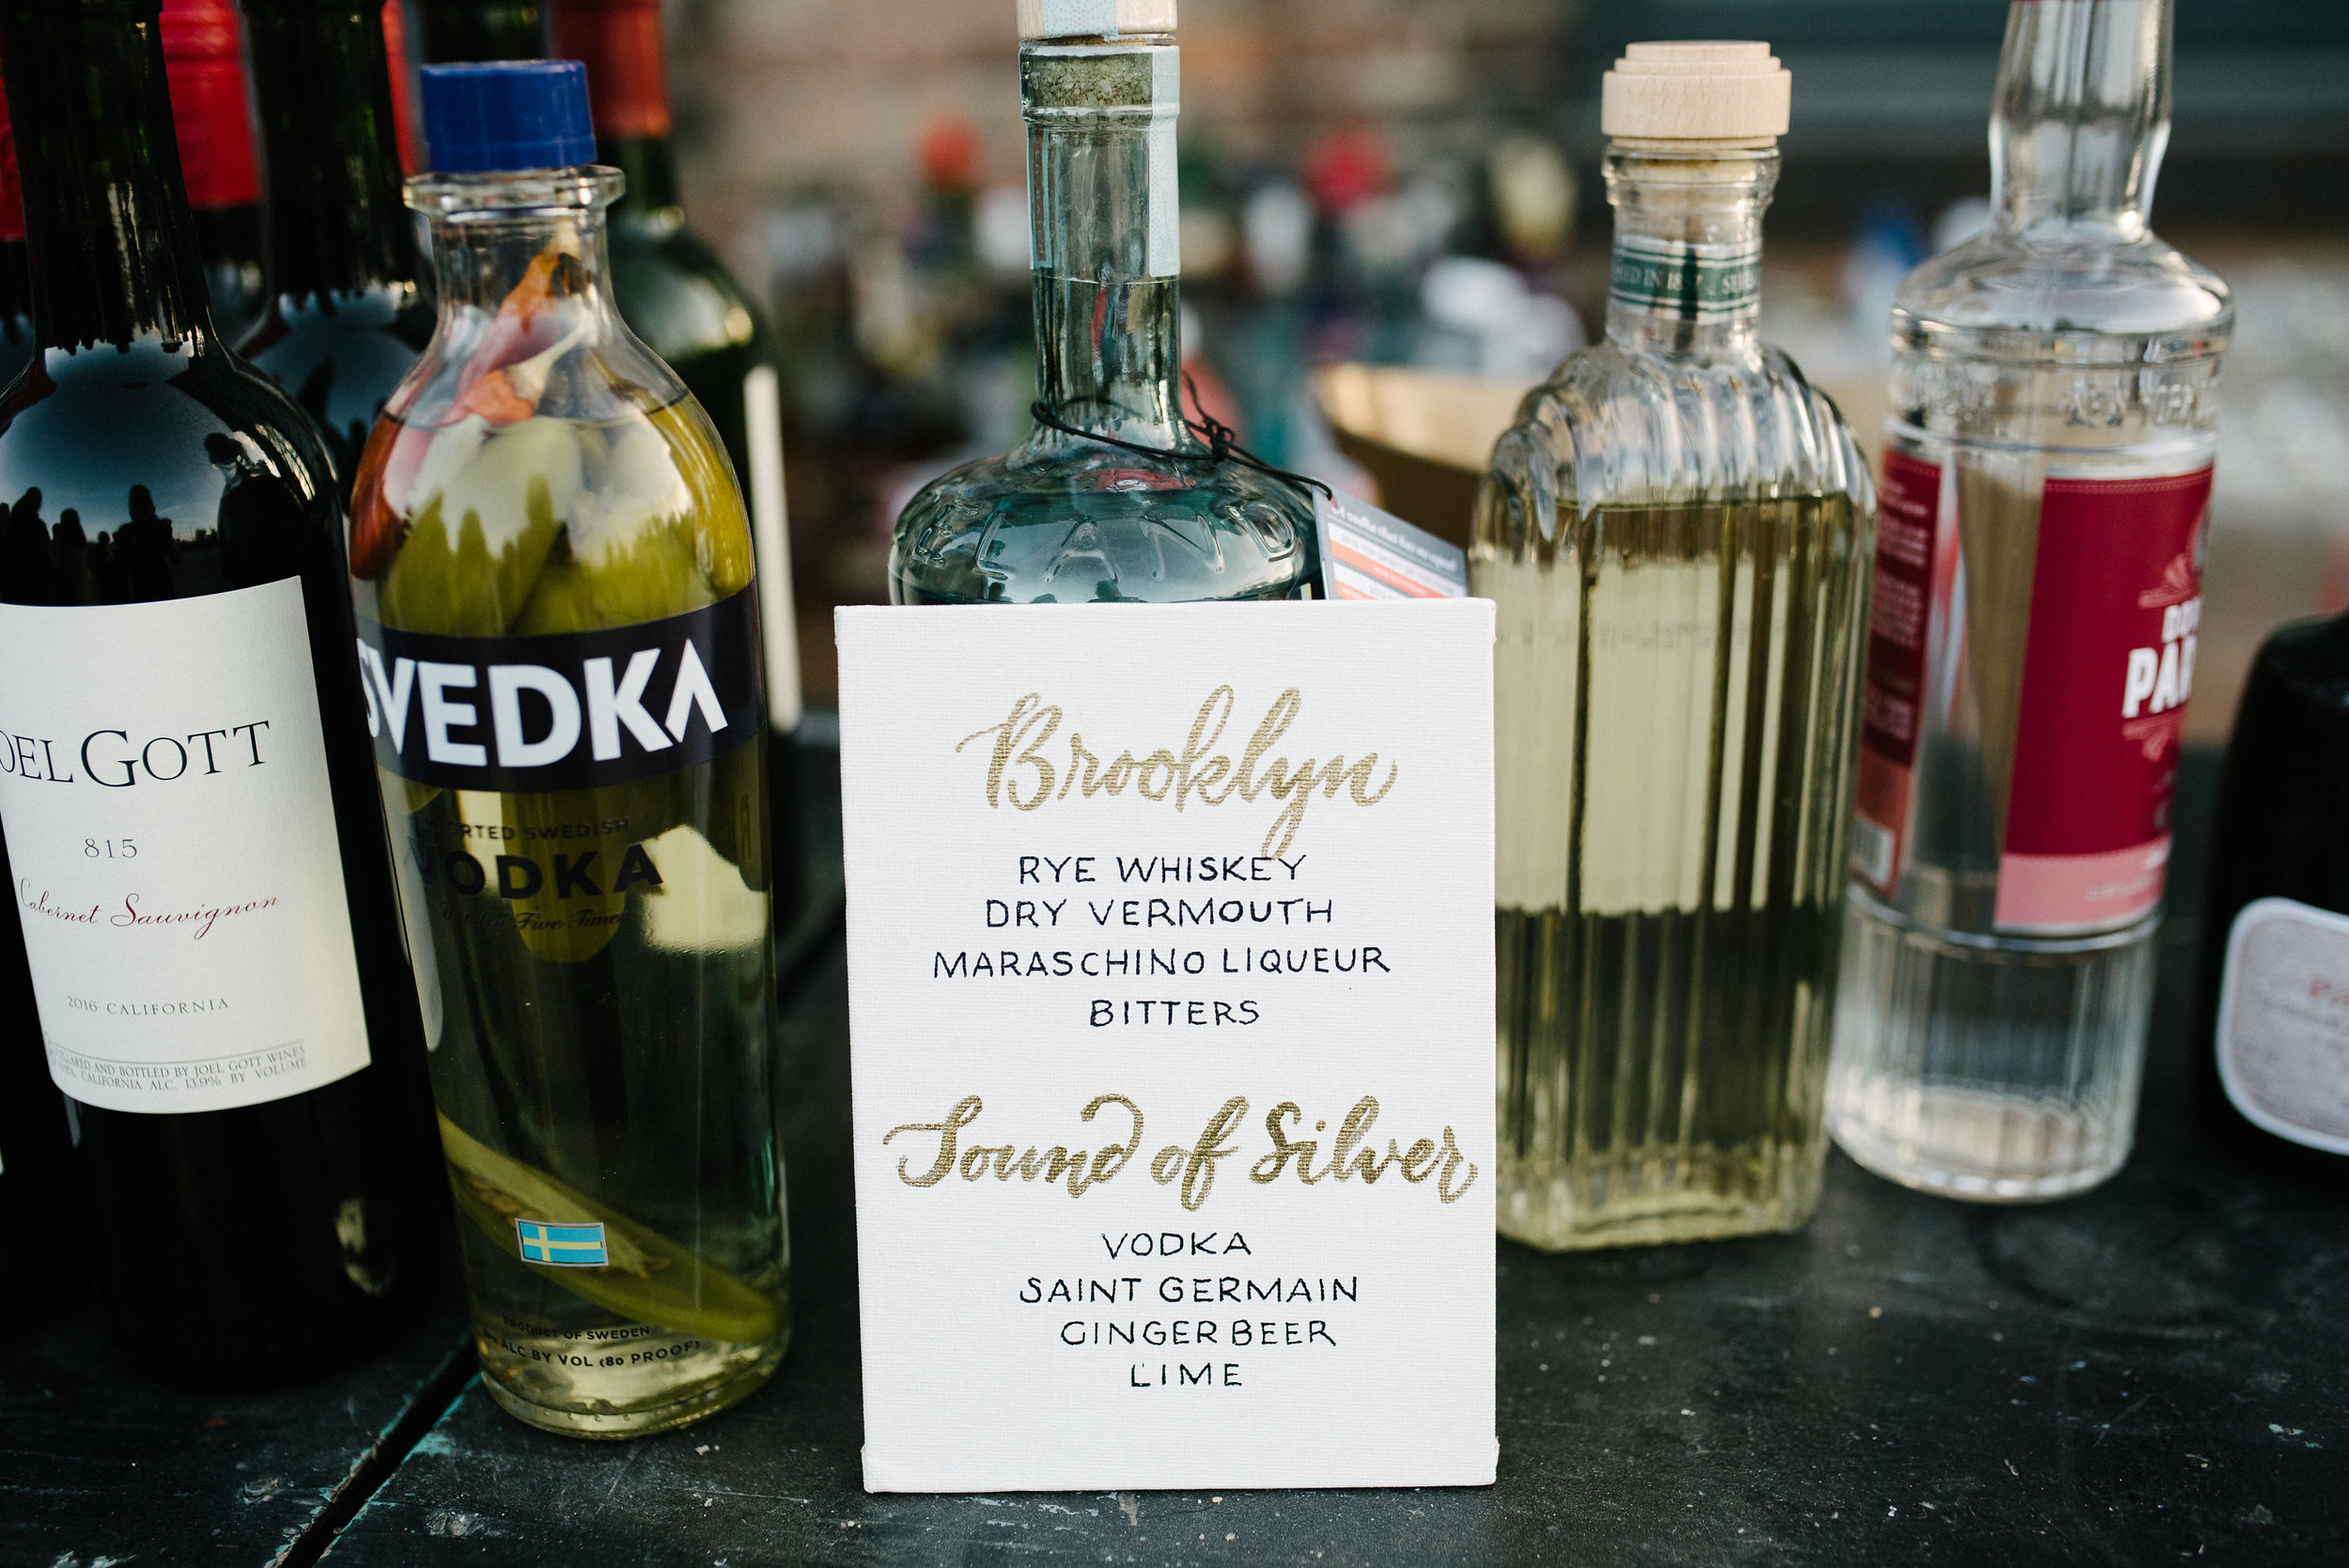 Wedding cocktail bar menu in hand-lettering   by www.chavelli.com